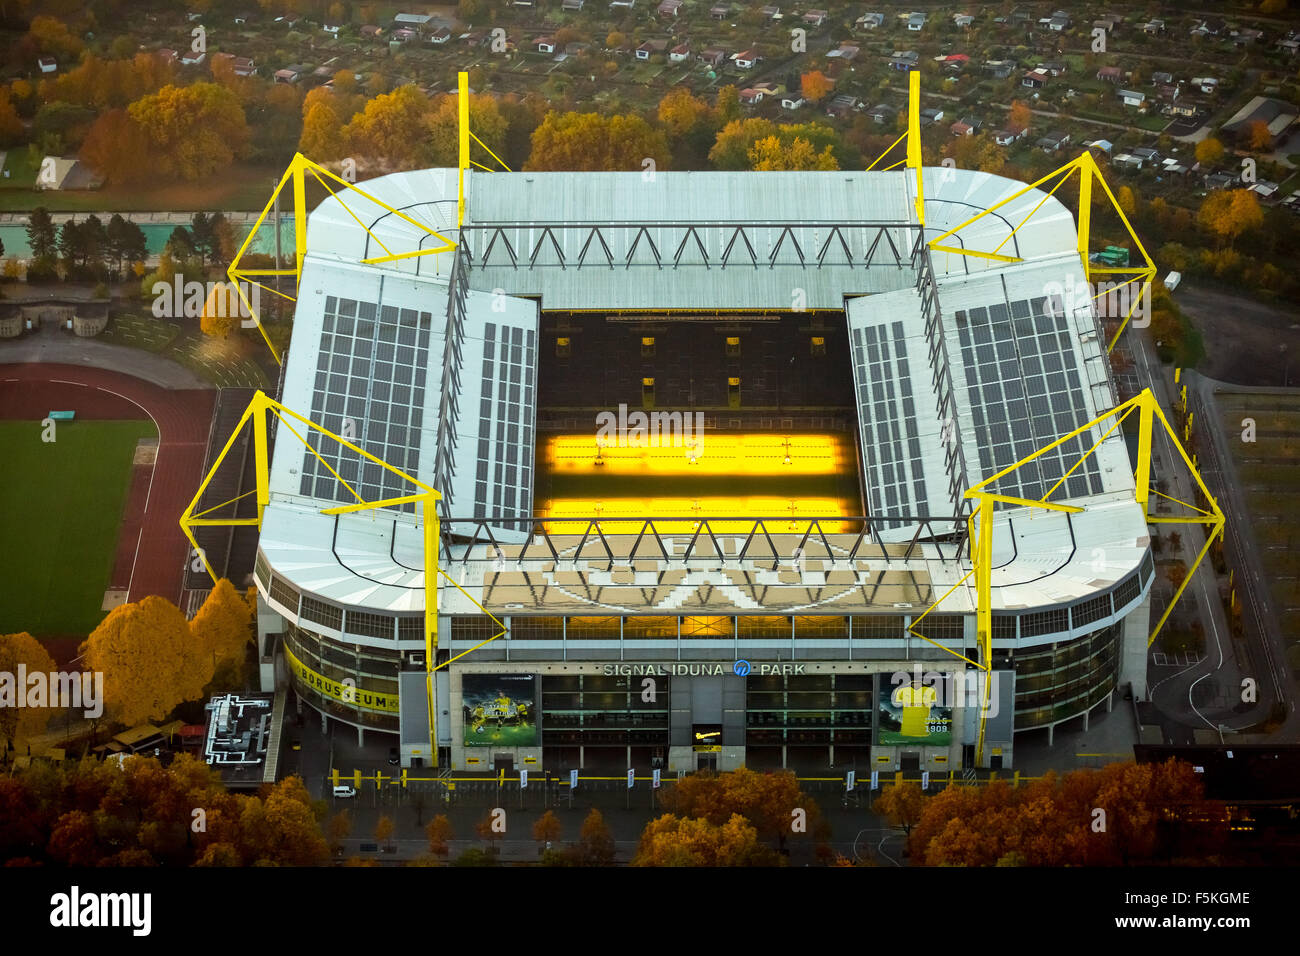 signal iduna park signal iduna park borussia dortmund bvb o9 stock photo 89555326 alamy. Black Bedroom Furniture Sets. Home Design Ideas